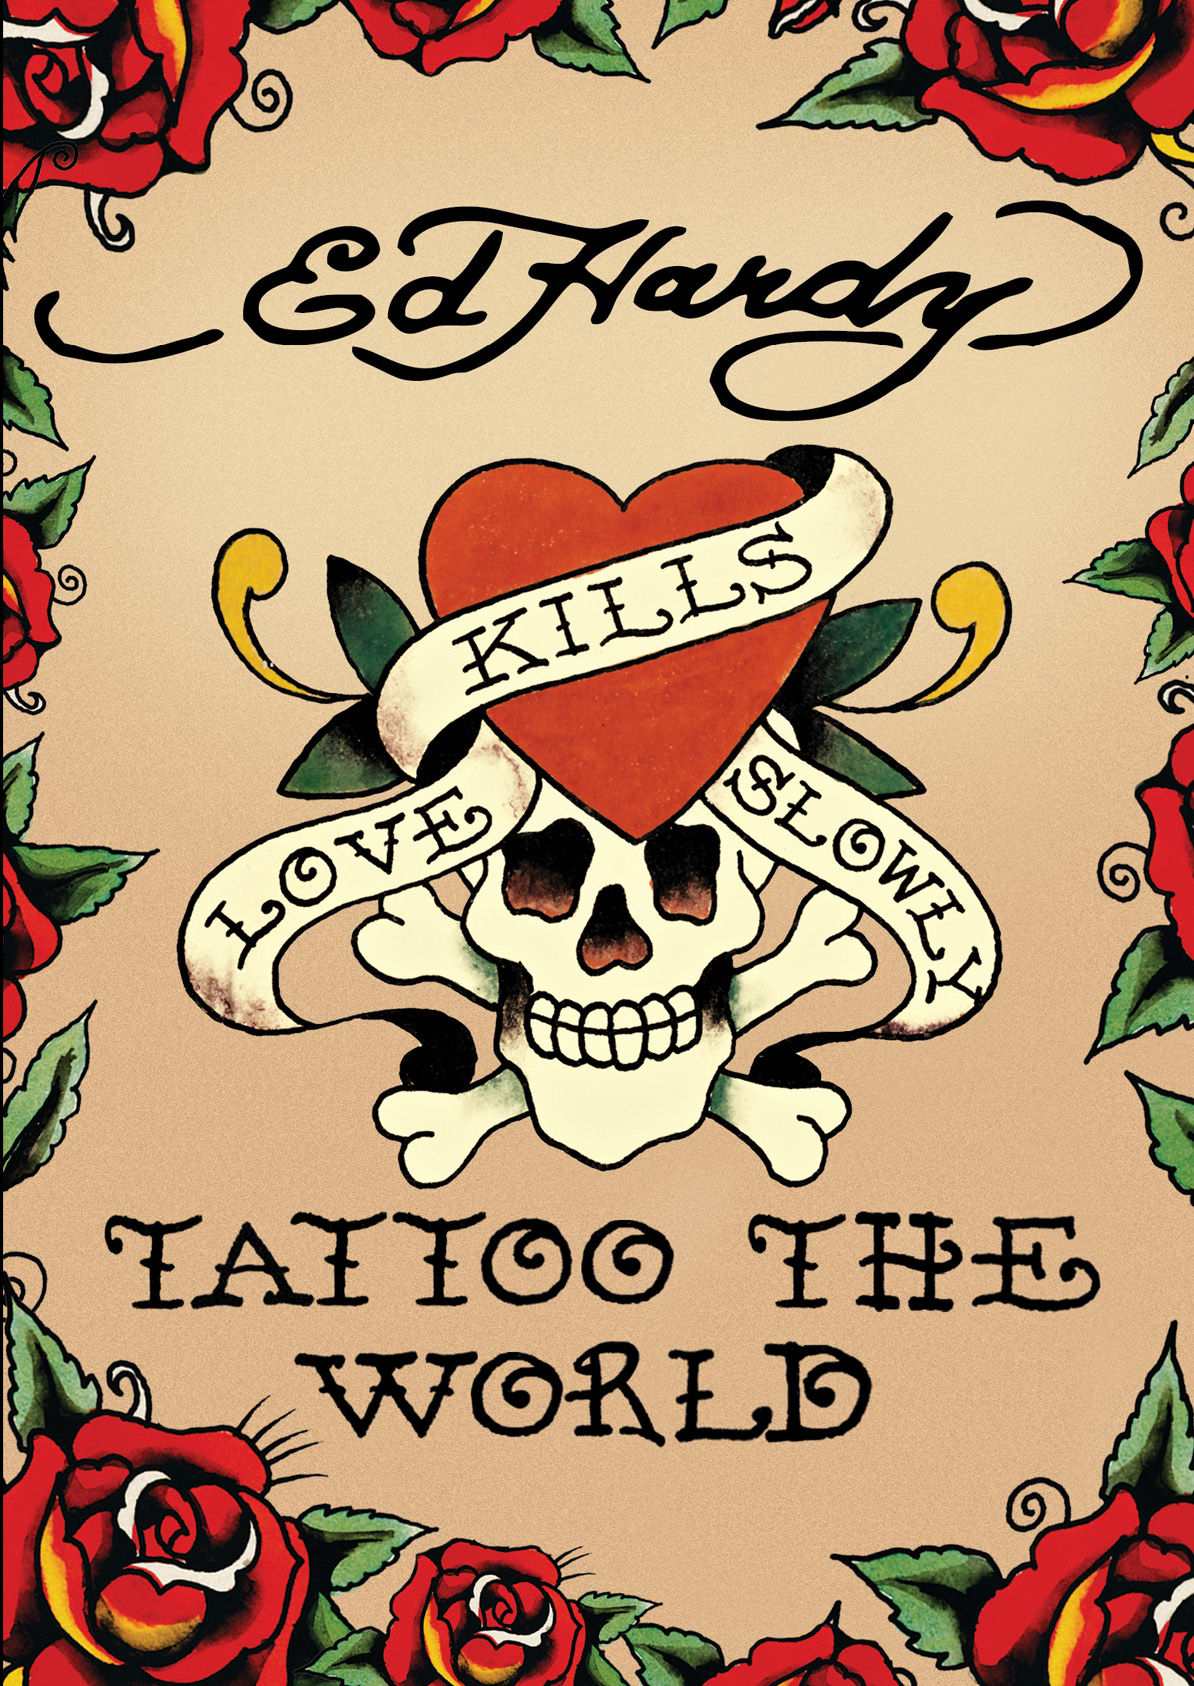 ed hardy tattoo the world an intimate glimpse into the life of a cultural phenomenon new. Black Bedroom Furniture Sets. Home Design Ideas